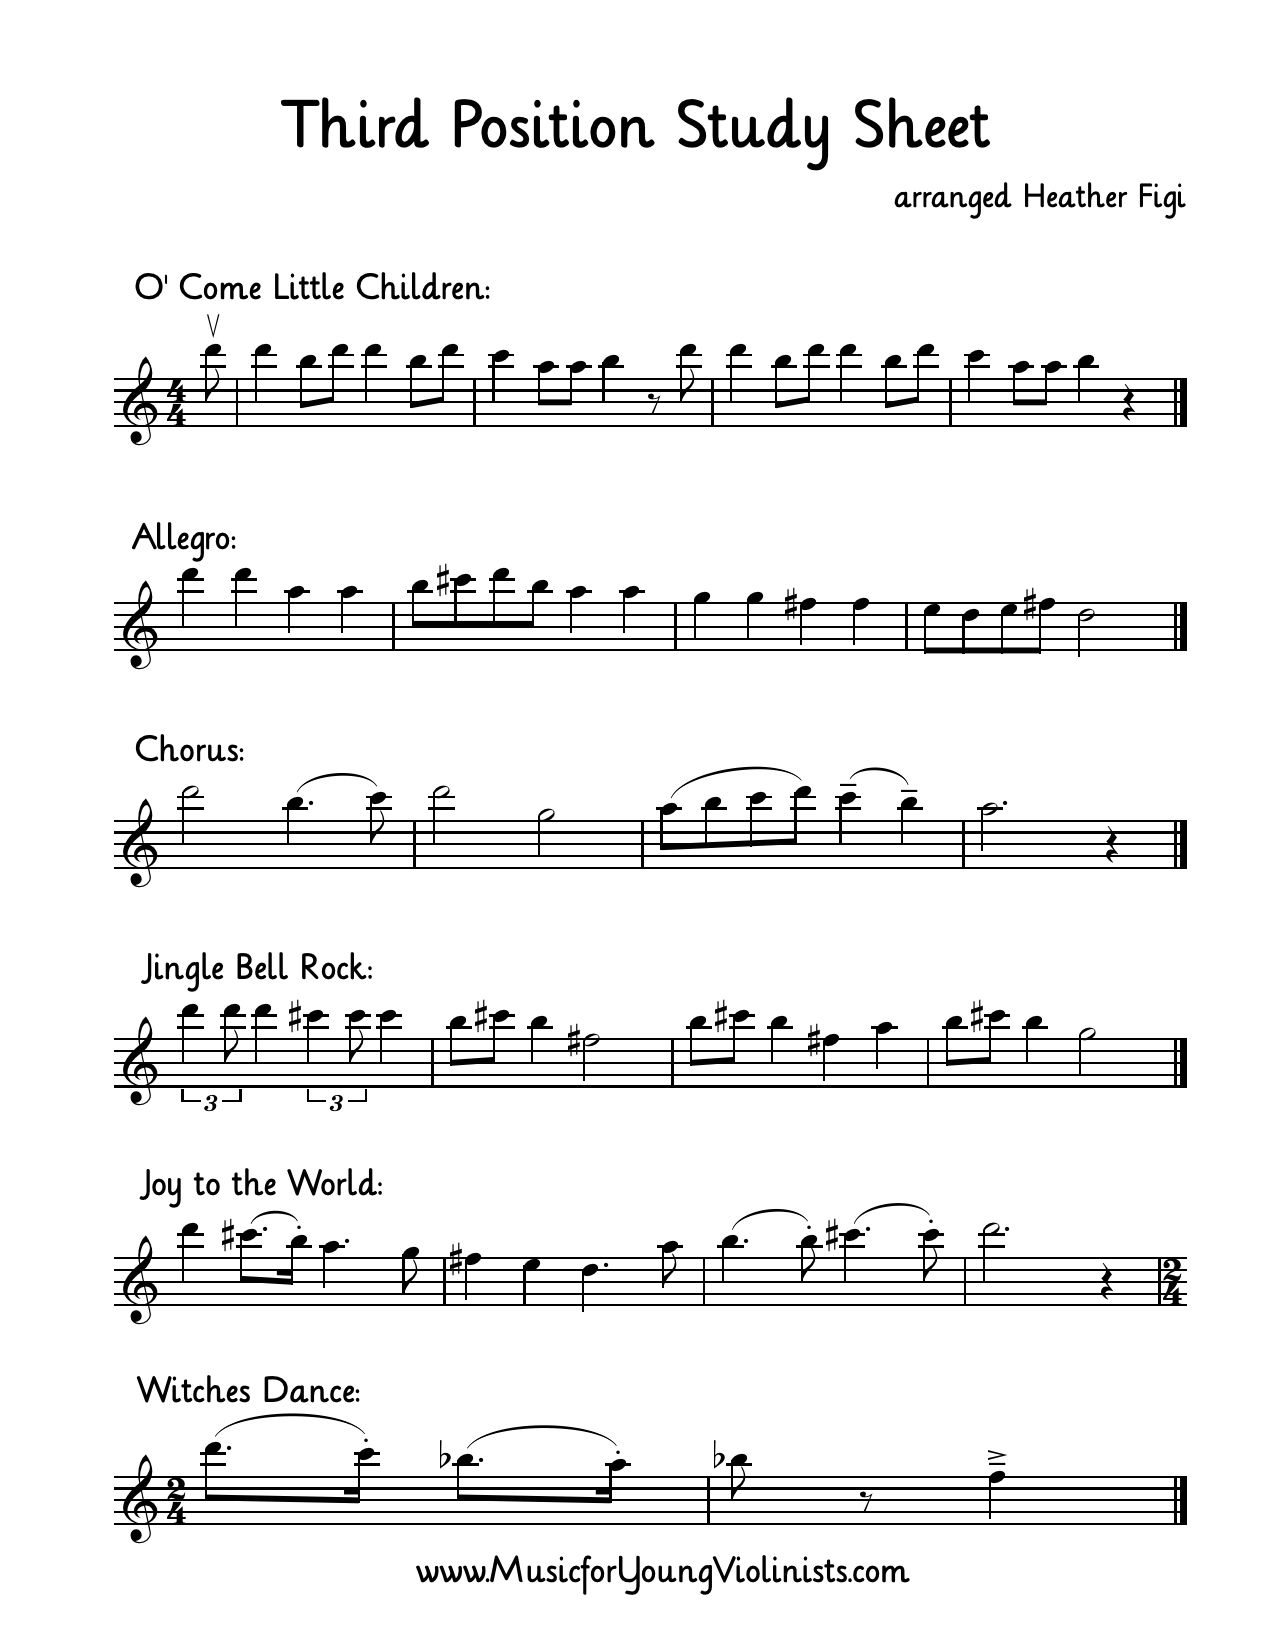 Third Position Study Sheet Part Of The Free Winter Music Packet Available For A Limited